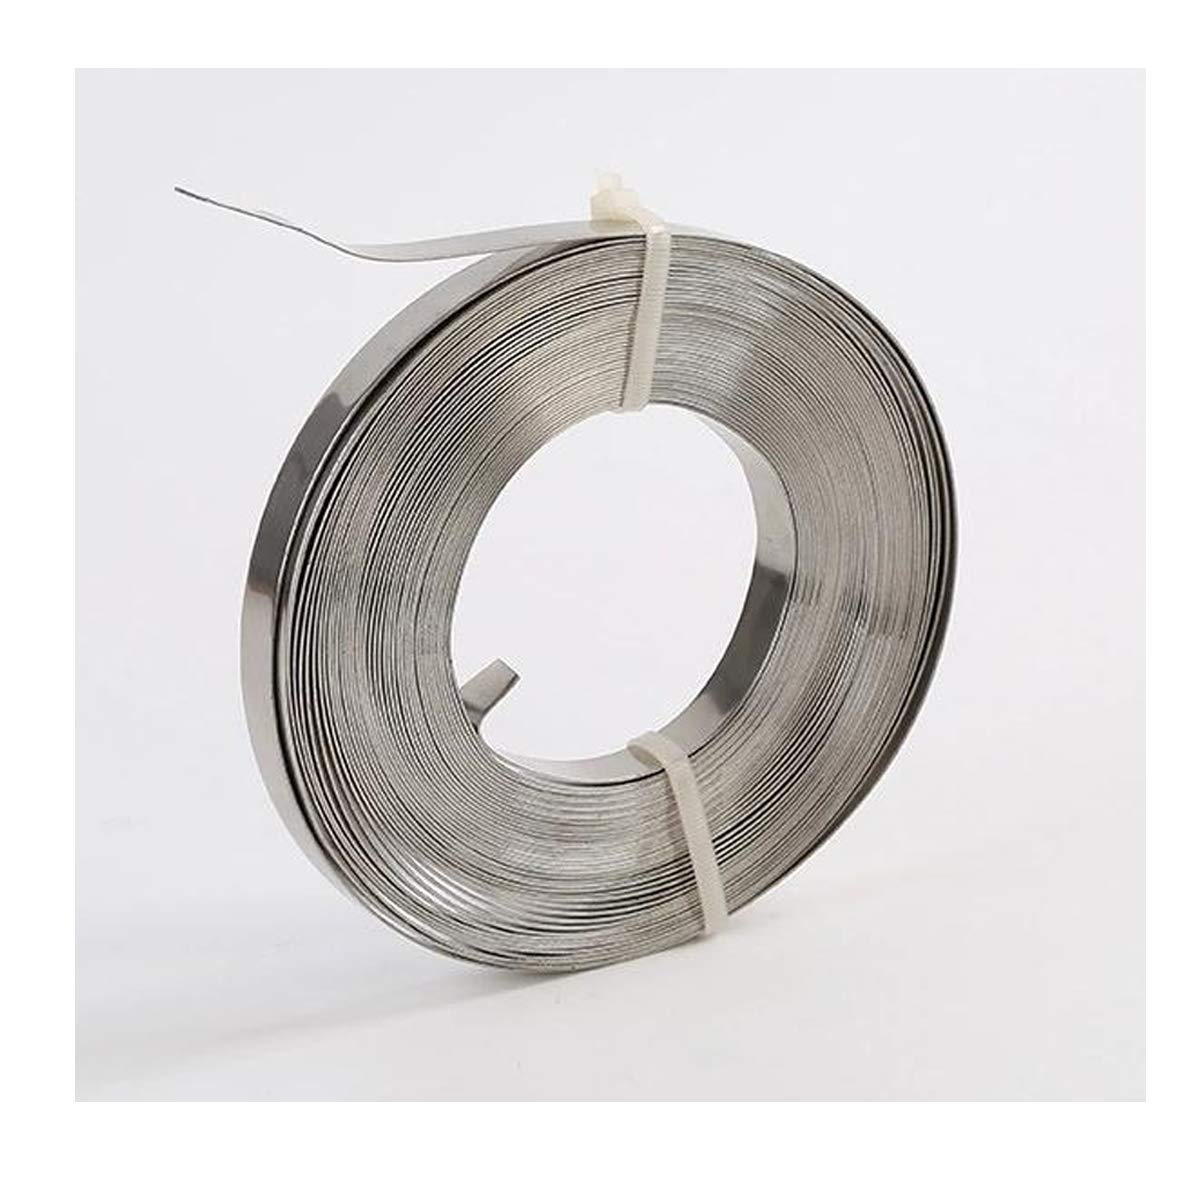 VOTOER 304 Stainless Steel Banding Strapping Band Strap Tools for Strapping 0.03'' Thick Coil, 100 Feet Roll (3/4'' Width)